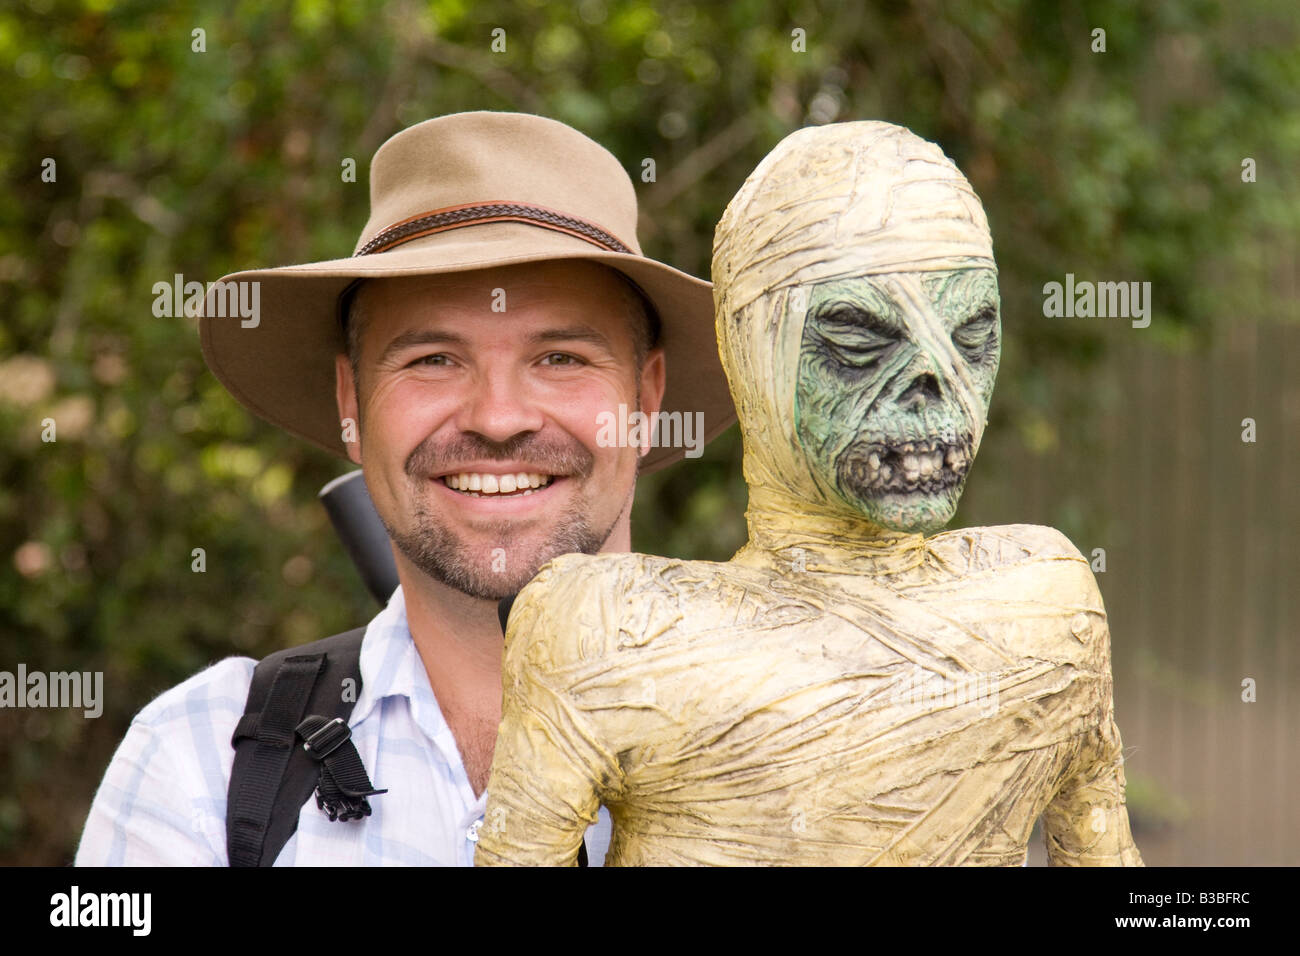 a visitor and ghoulish dummy at Fairport s Cropredy Convention music festival 2008 near Banbury England UK - Stock Image